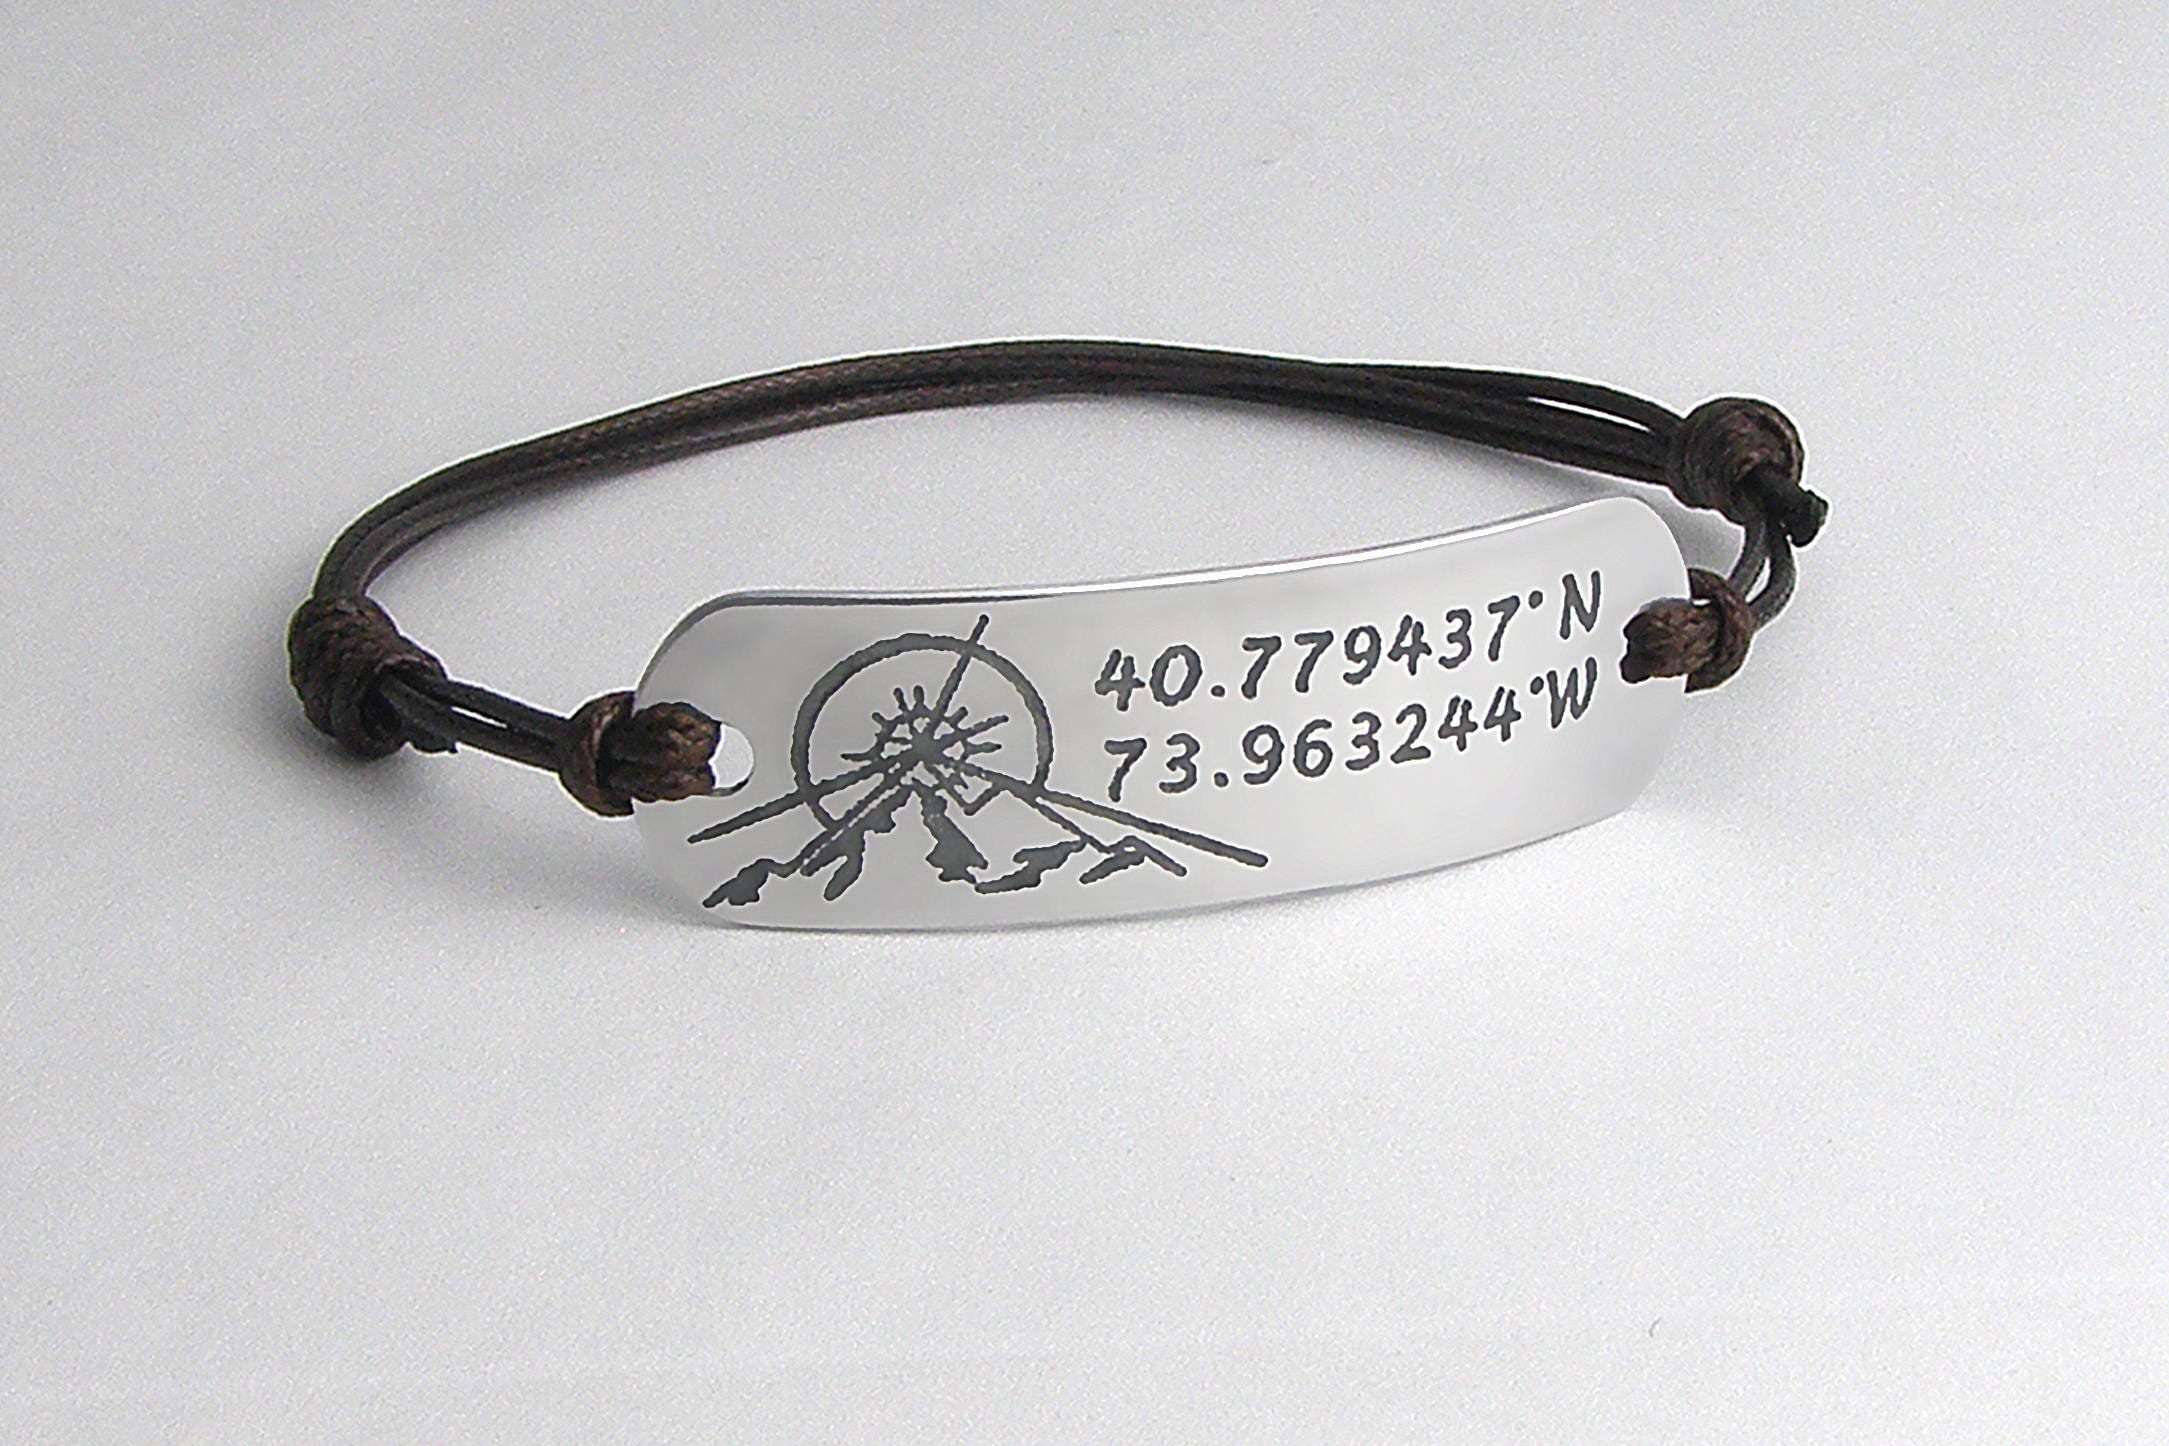 lat shop lattitude longitude latitude and couples bracelets long bracelet